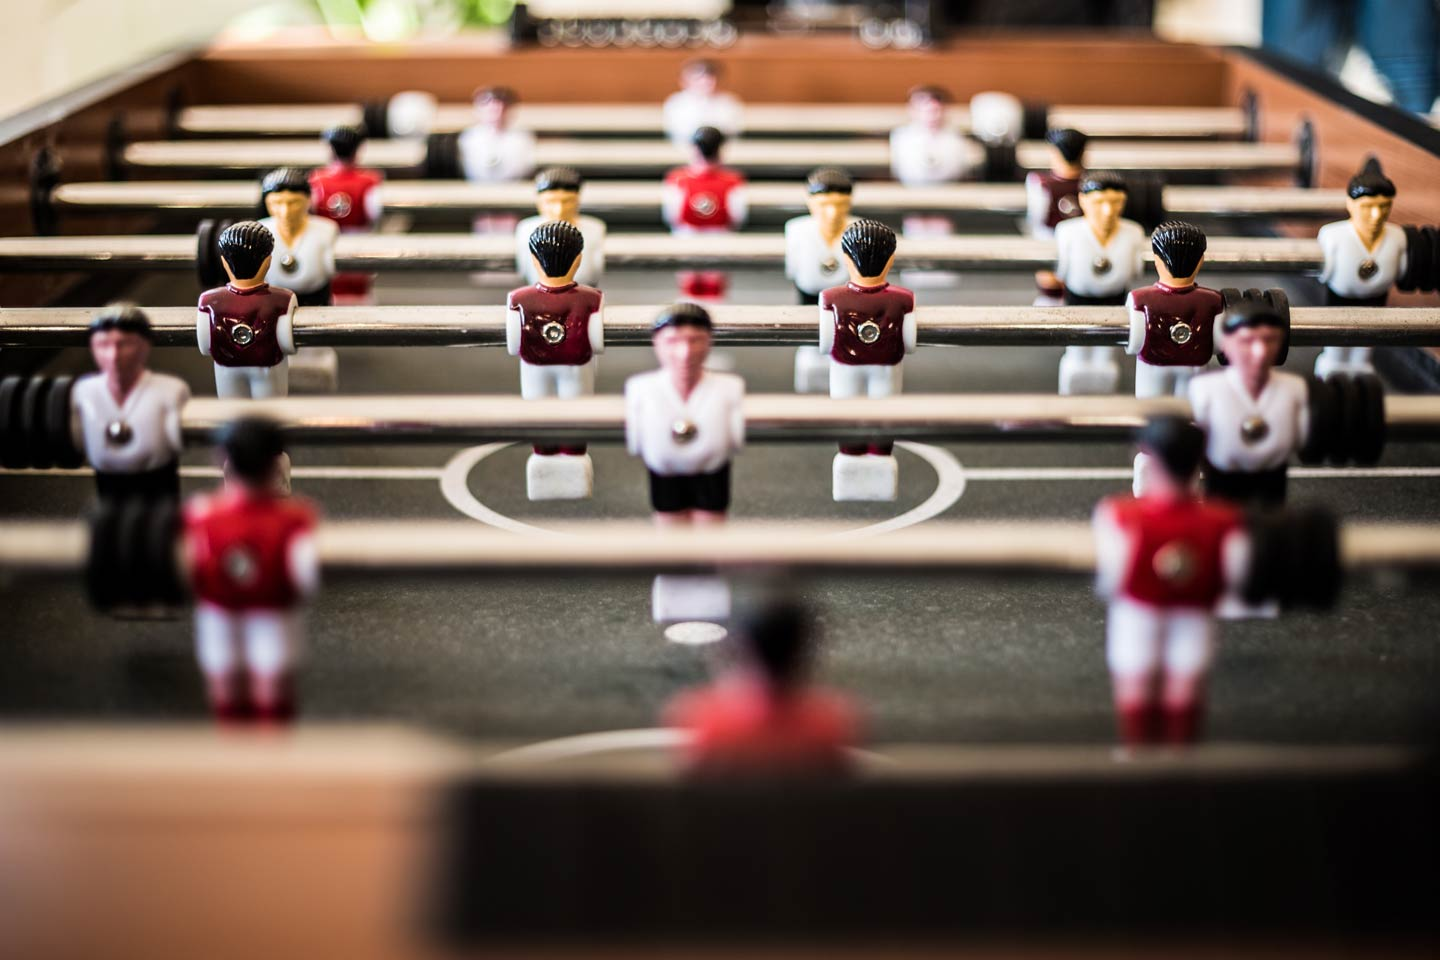 Table Football in a Man Cave